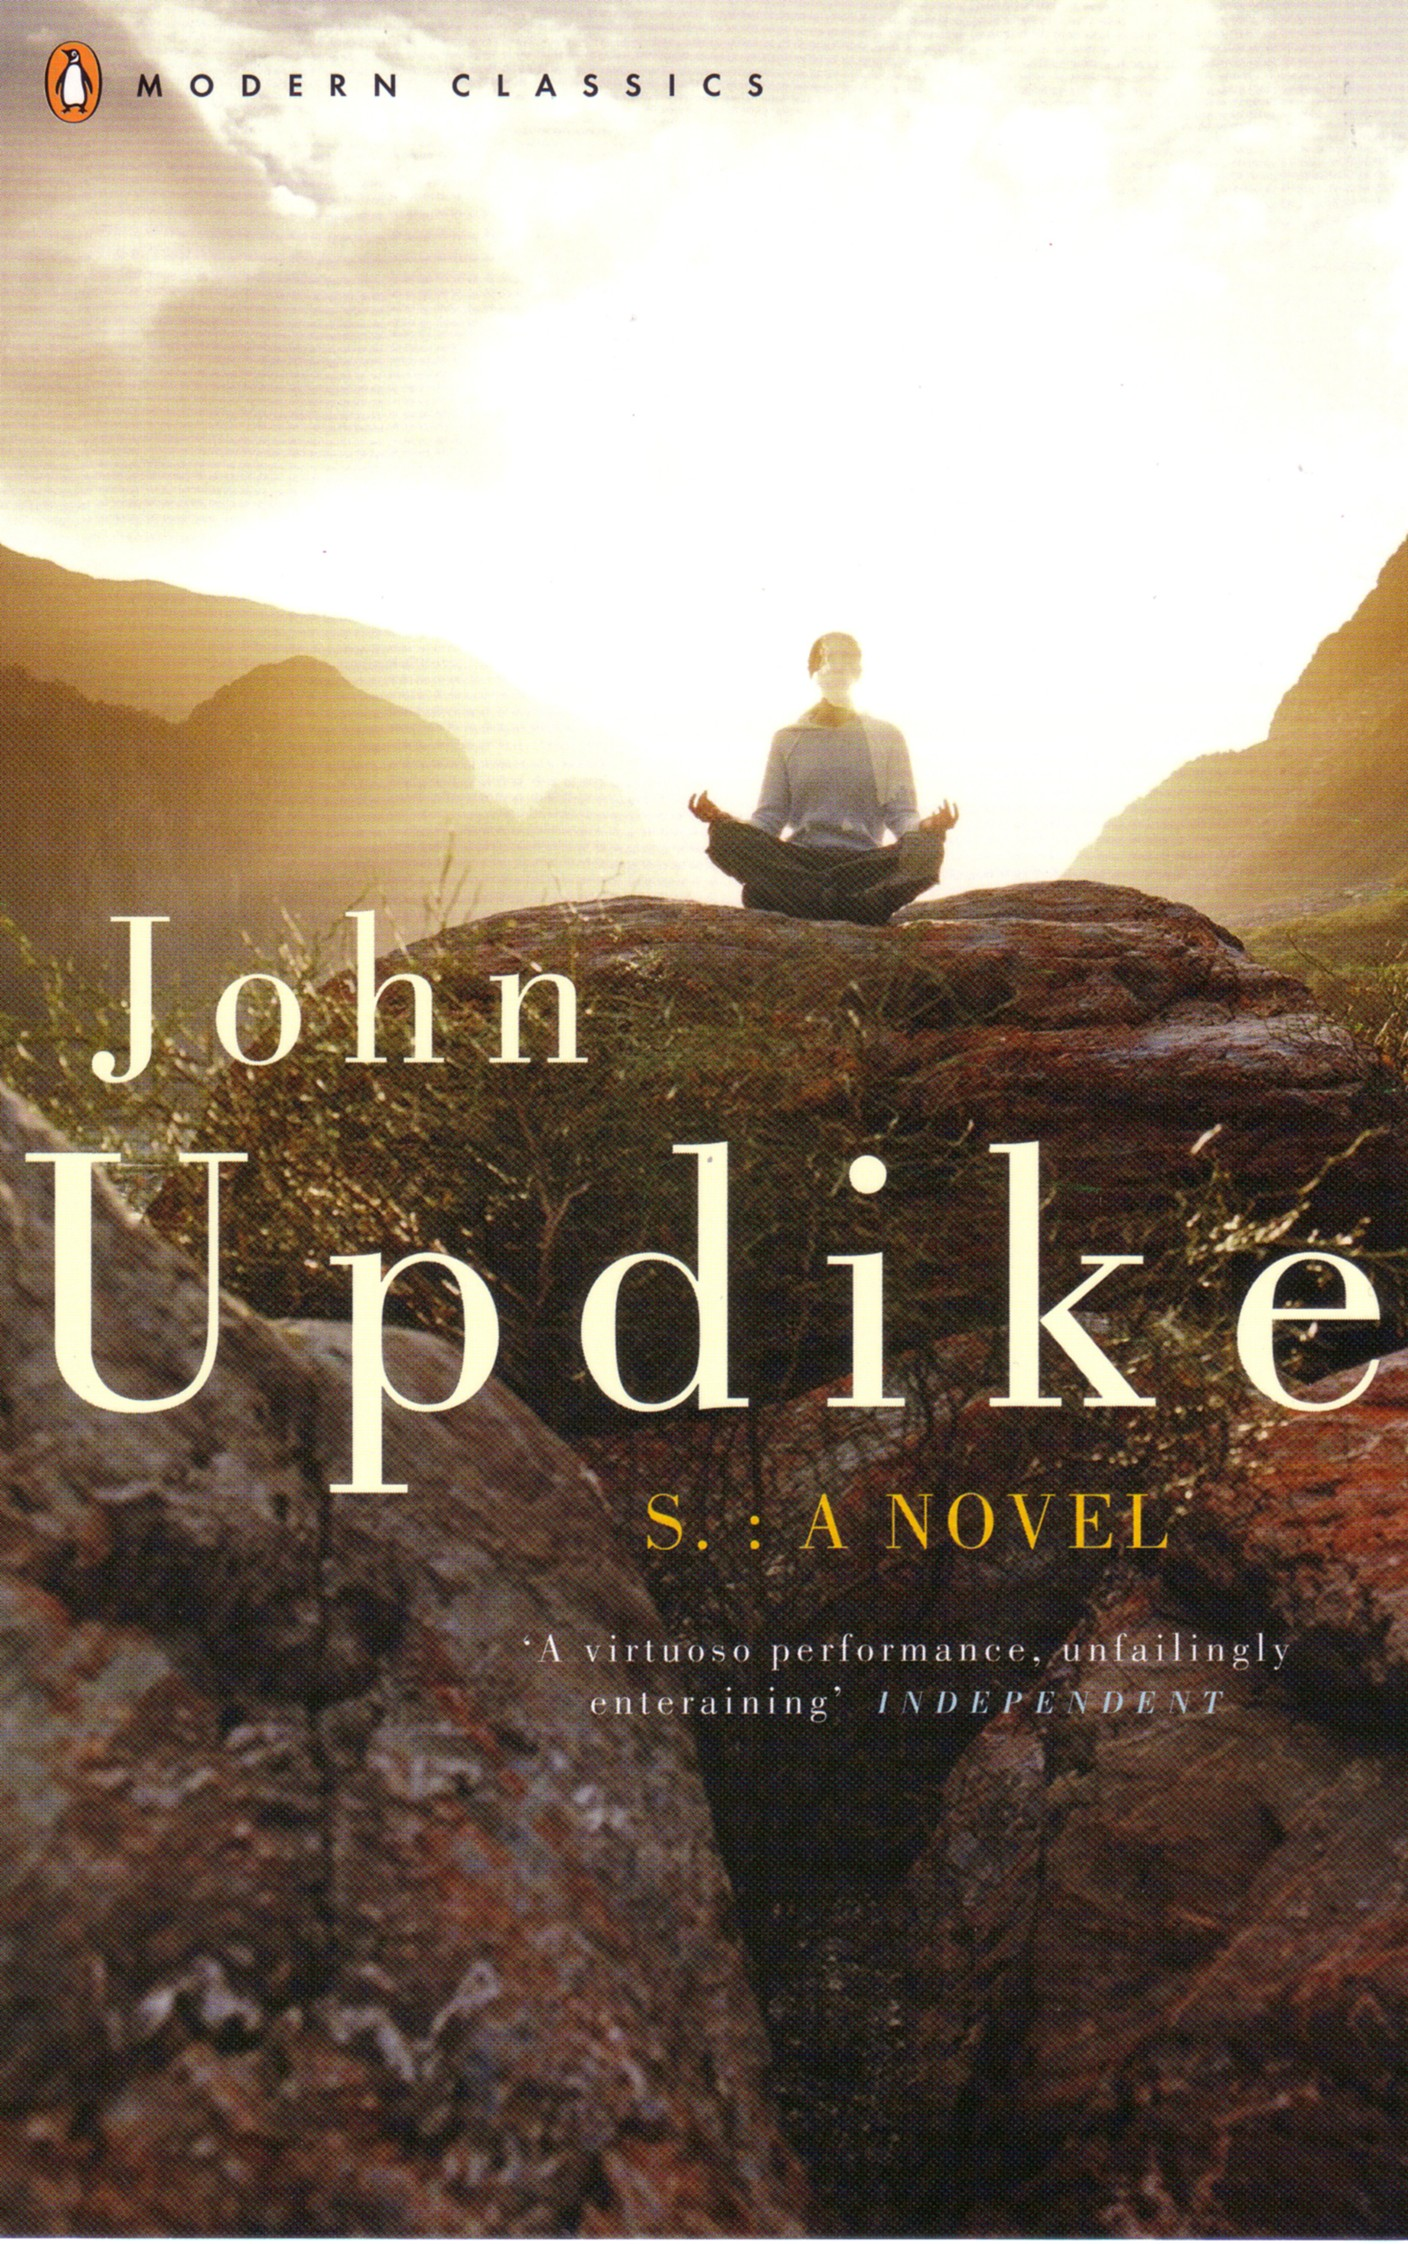 an introduction to the life and literature by john updike In an interview updike stated, i began as a writer of light verse, and have tried to carry over into my serious or lyric verse something of the strictness and liveliness of the lesser form an acclaimed and award-winning writer of fiction, essays, and reviews, john updike also wrote poetry for most of his life.